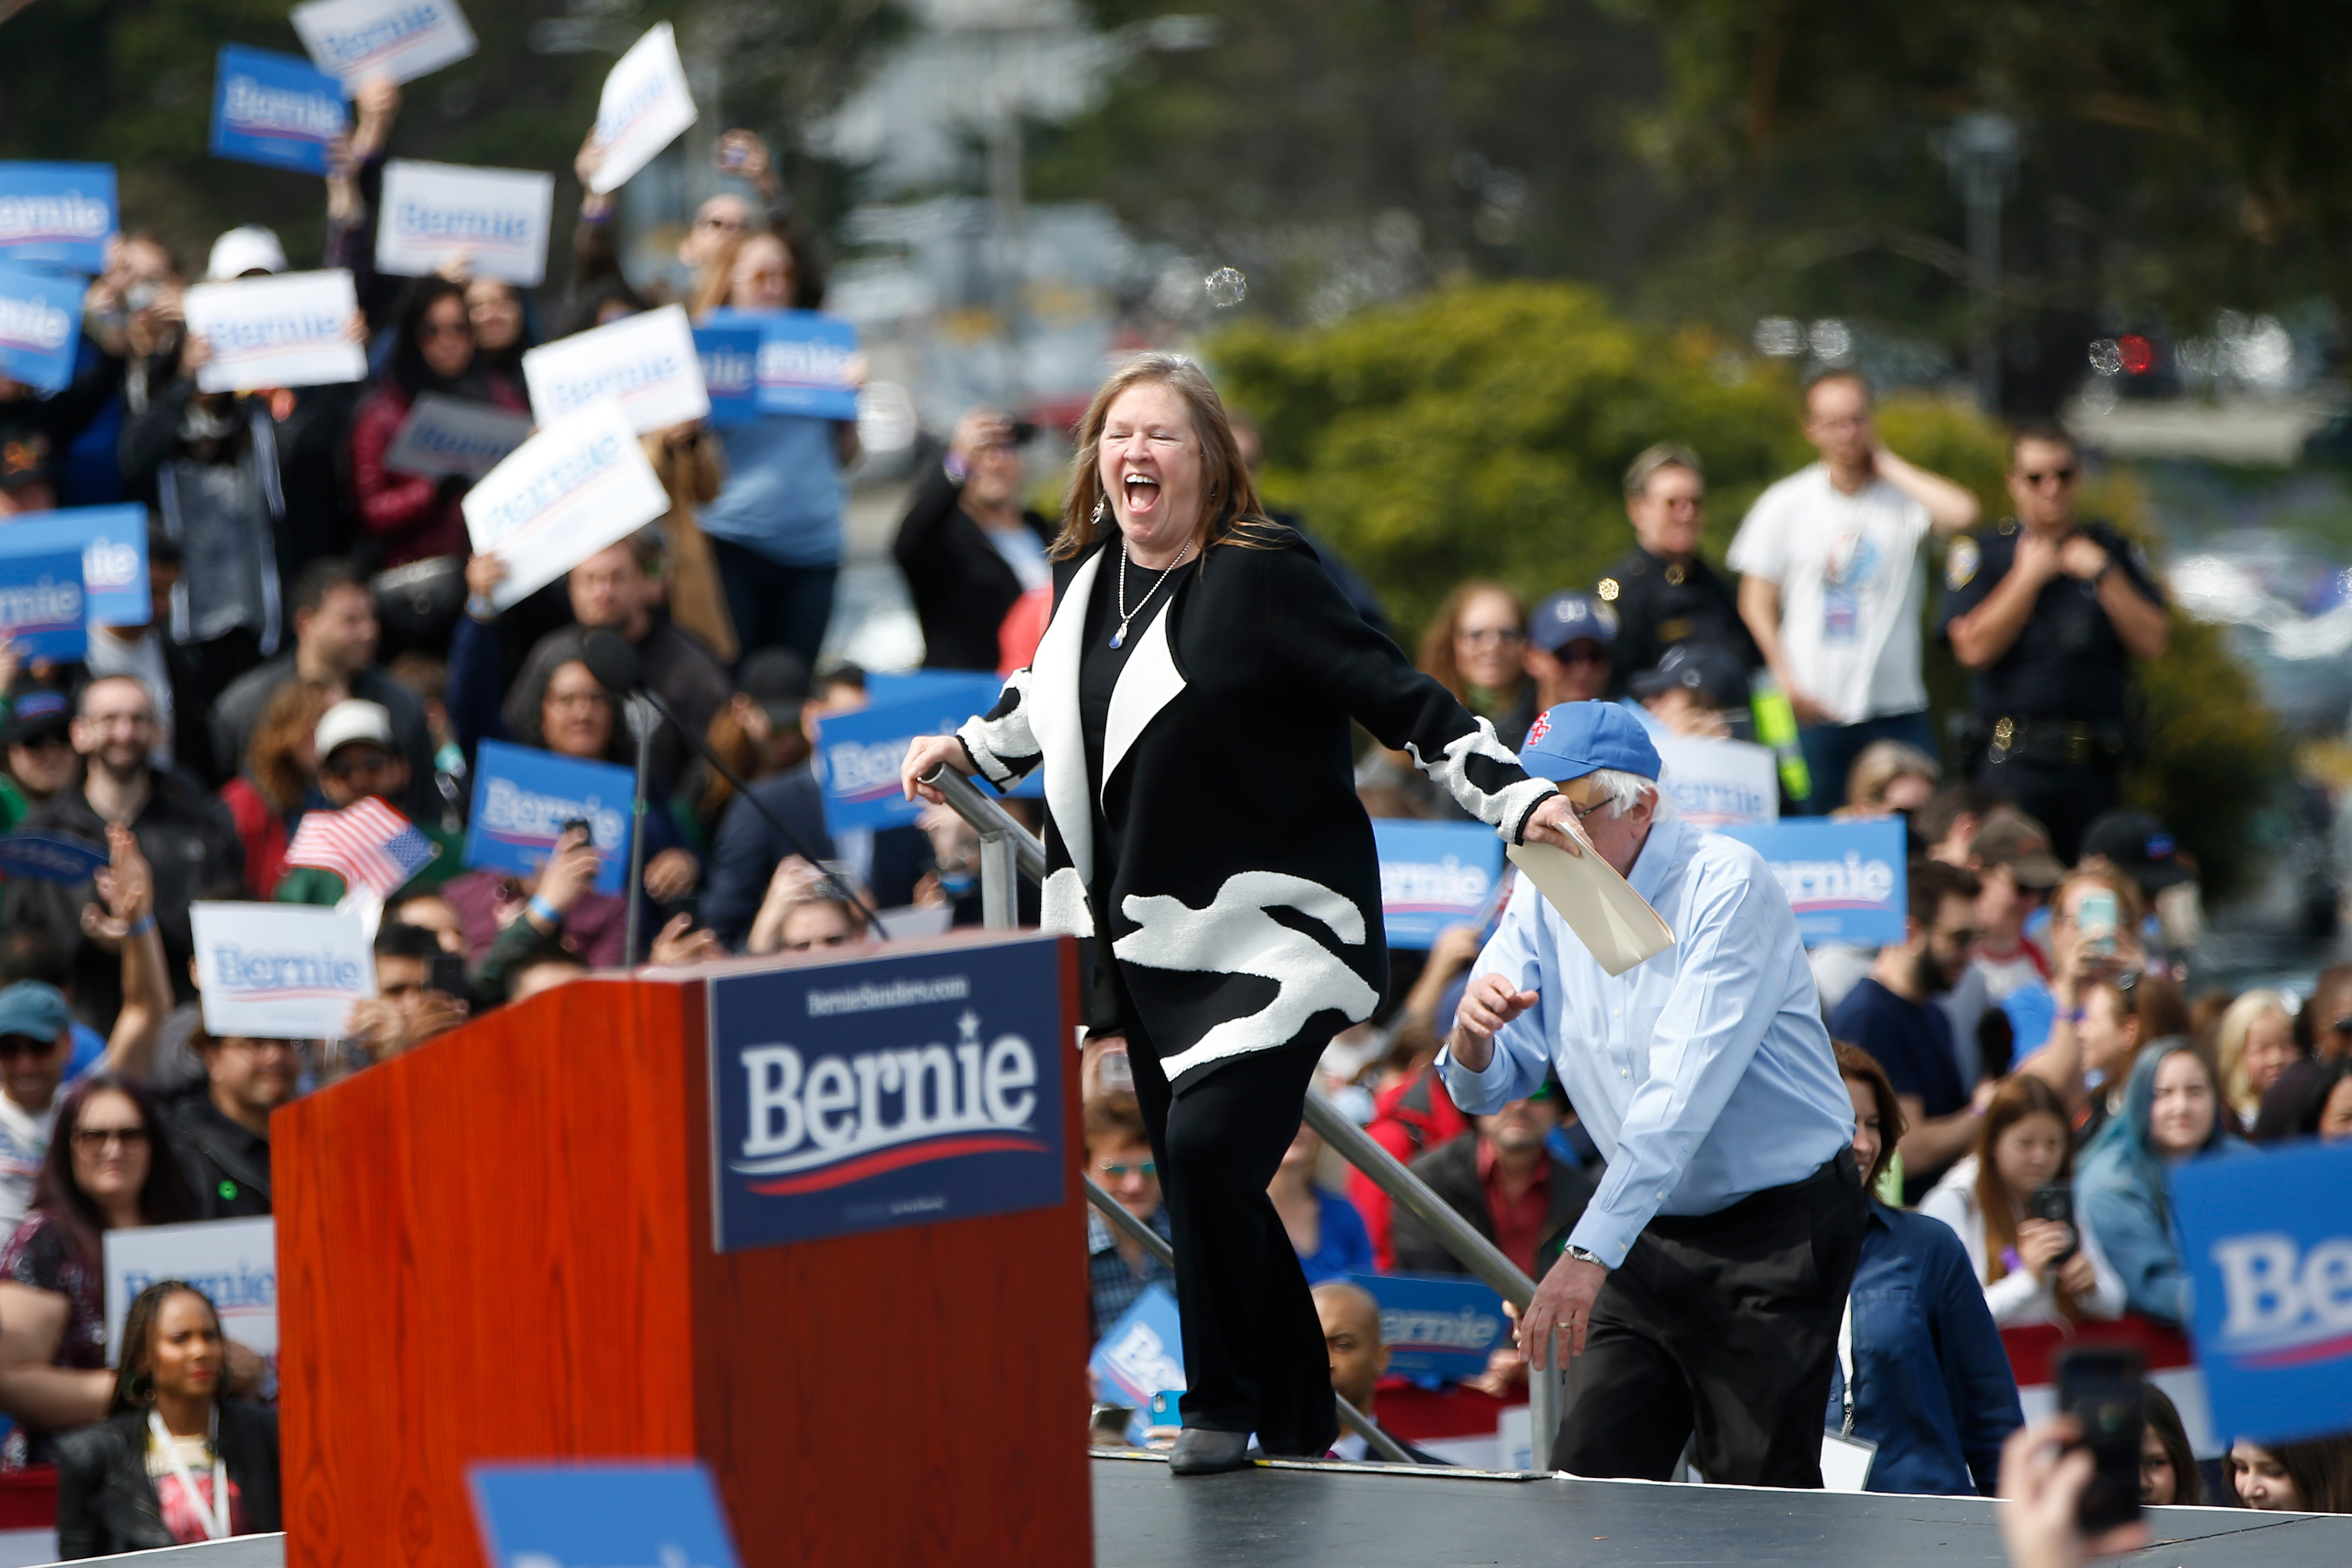 Jane Sanders, wife of 2020 Democratic presidential candidate U.S. Sen. Bernie Sanders reacts as she arrives on stage during a campaign rally at Great Meadow Park in Fort Mason on March 24, 2019 in San Francisco, California. (Photo by Stephen Lam/Getty Images)